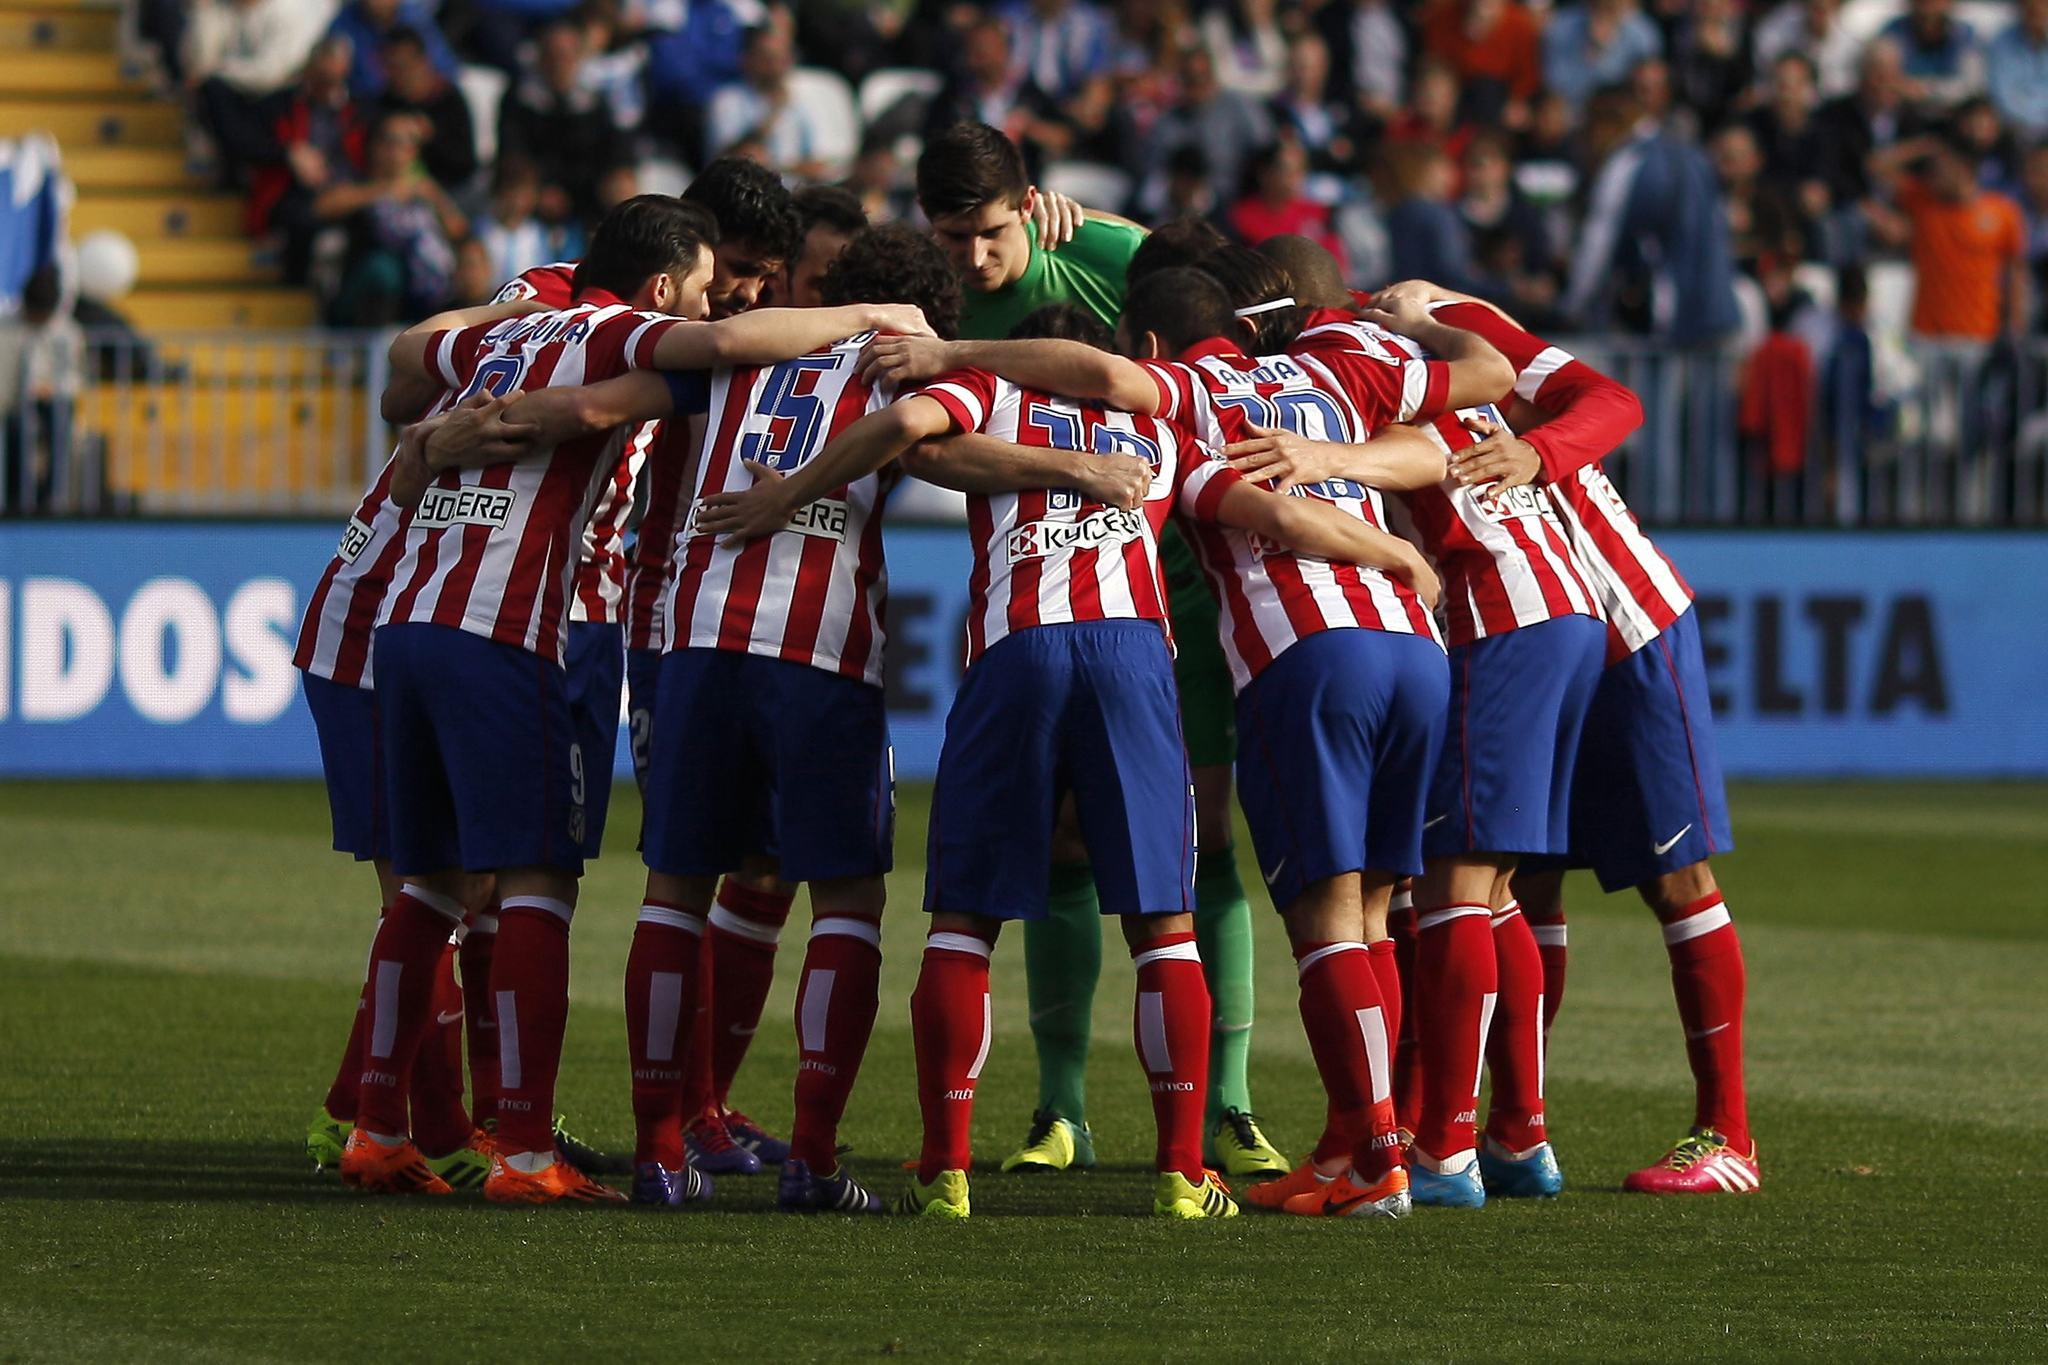 Atletico Madrid players gather before their Spanish First Division soccer match against Malaga at La Rosaleda stadium in Malaga, southern Spain January 4, 2014.